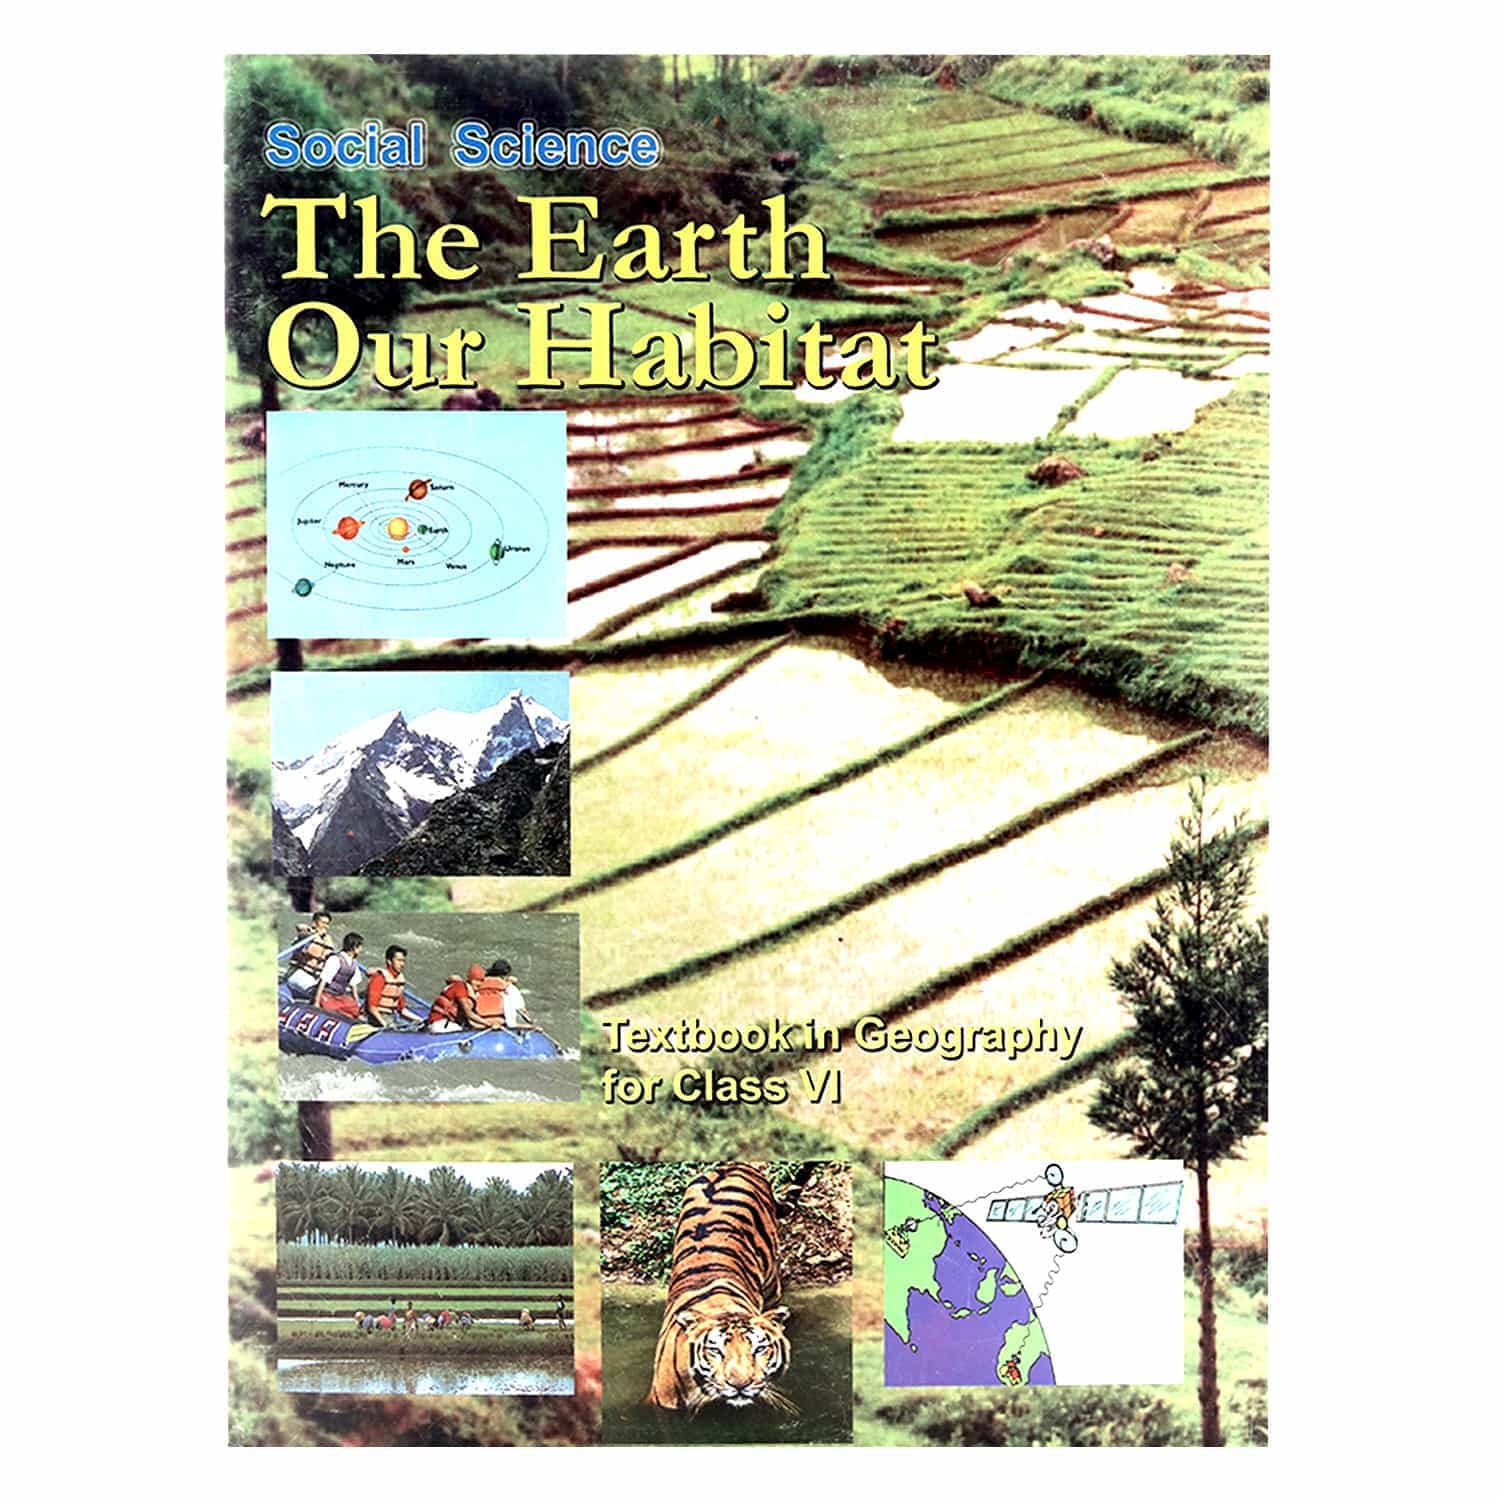 NCERT Geography Textbook - Class 6 - The Earth Our Habitat